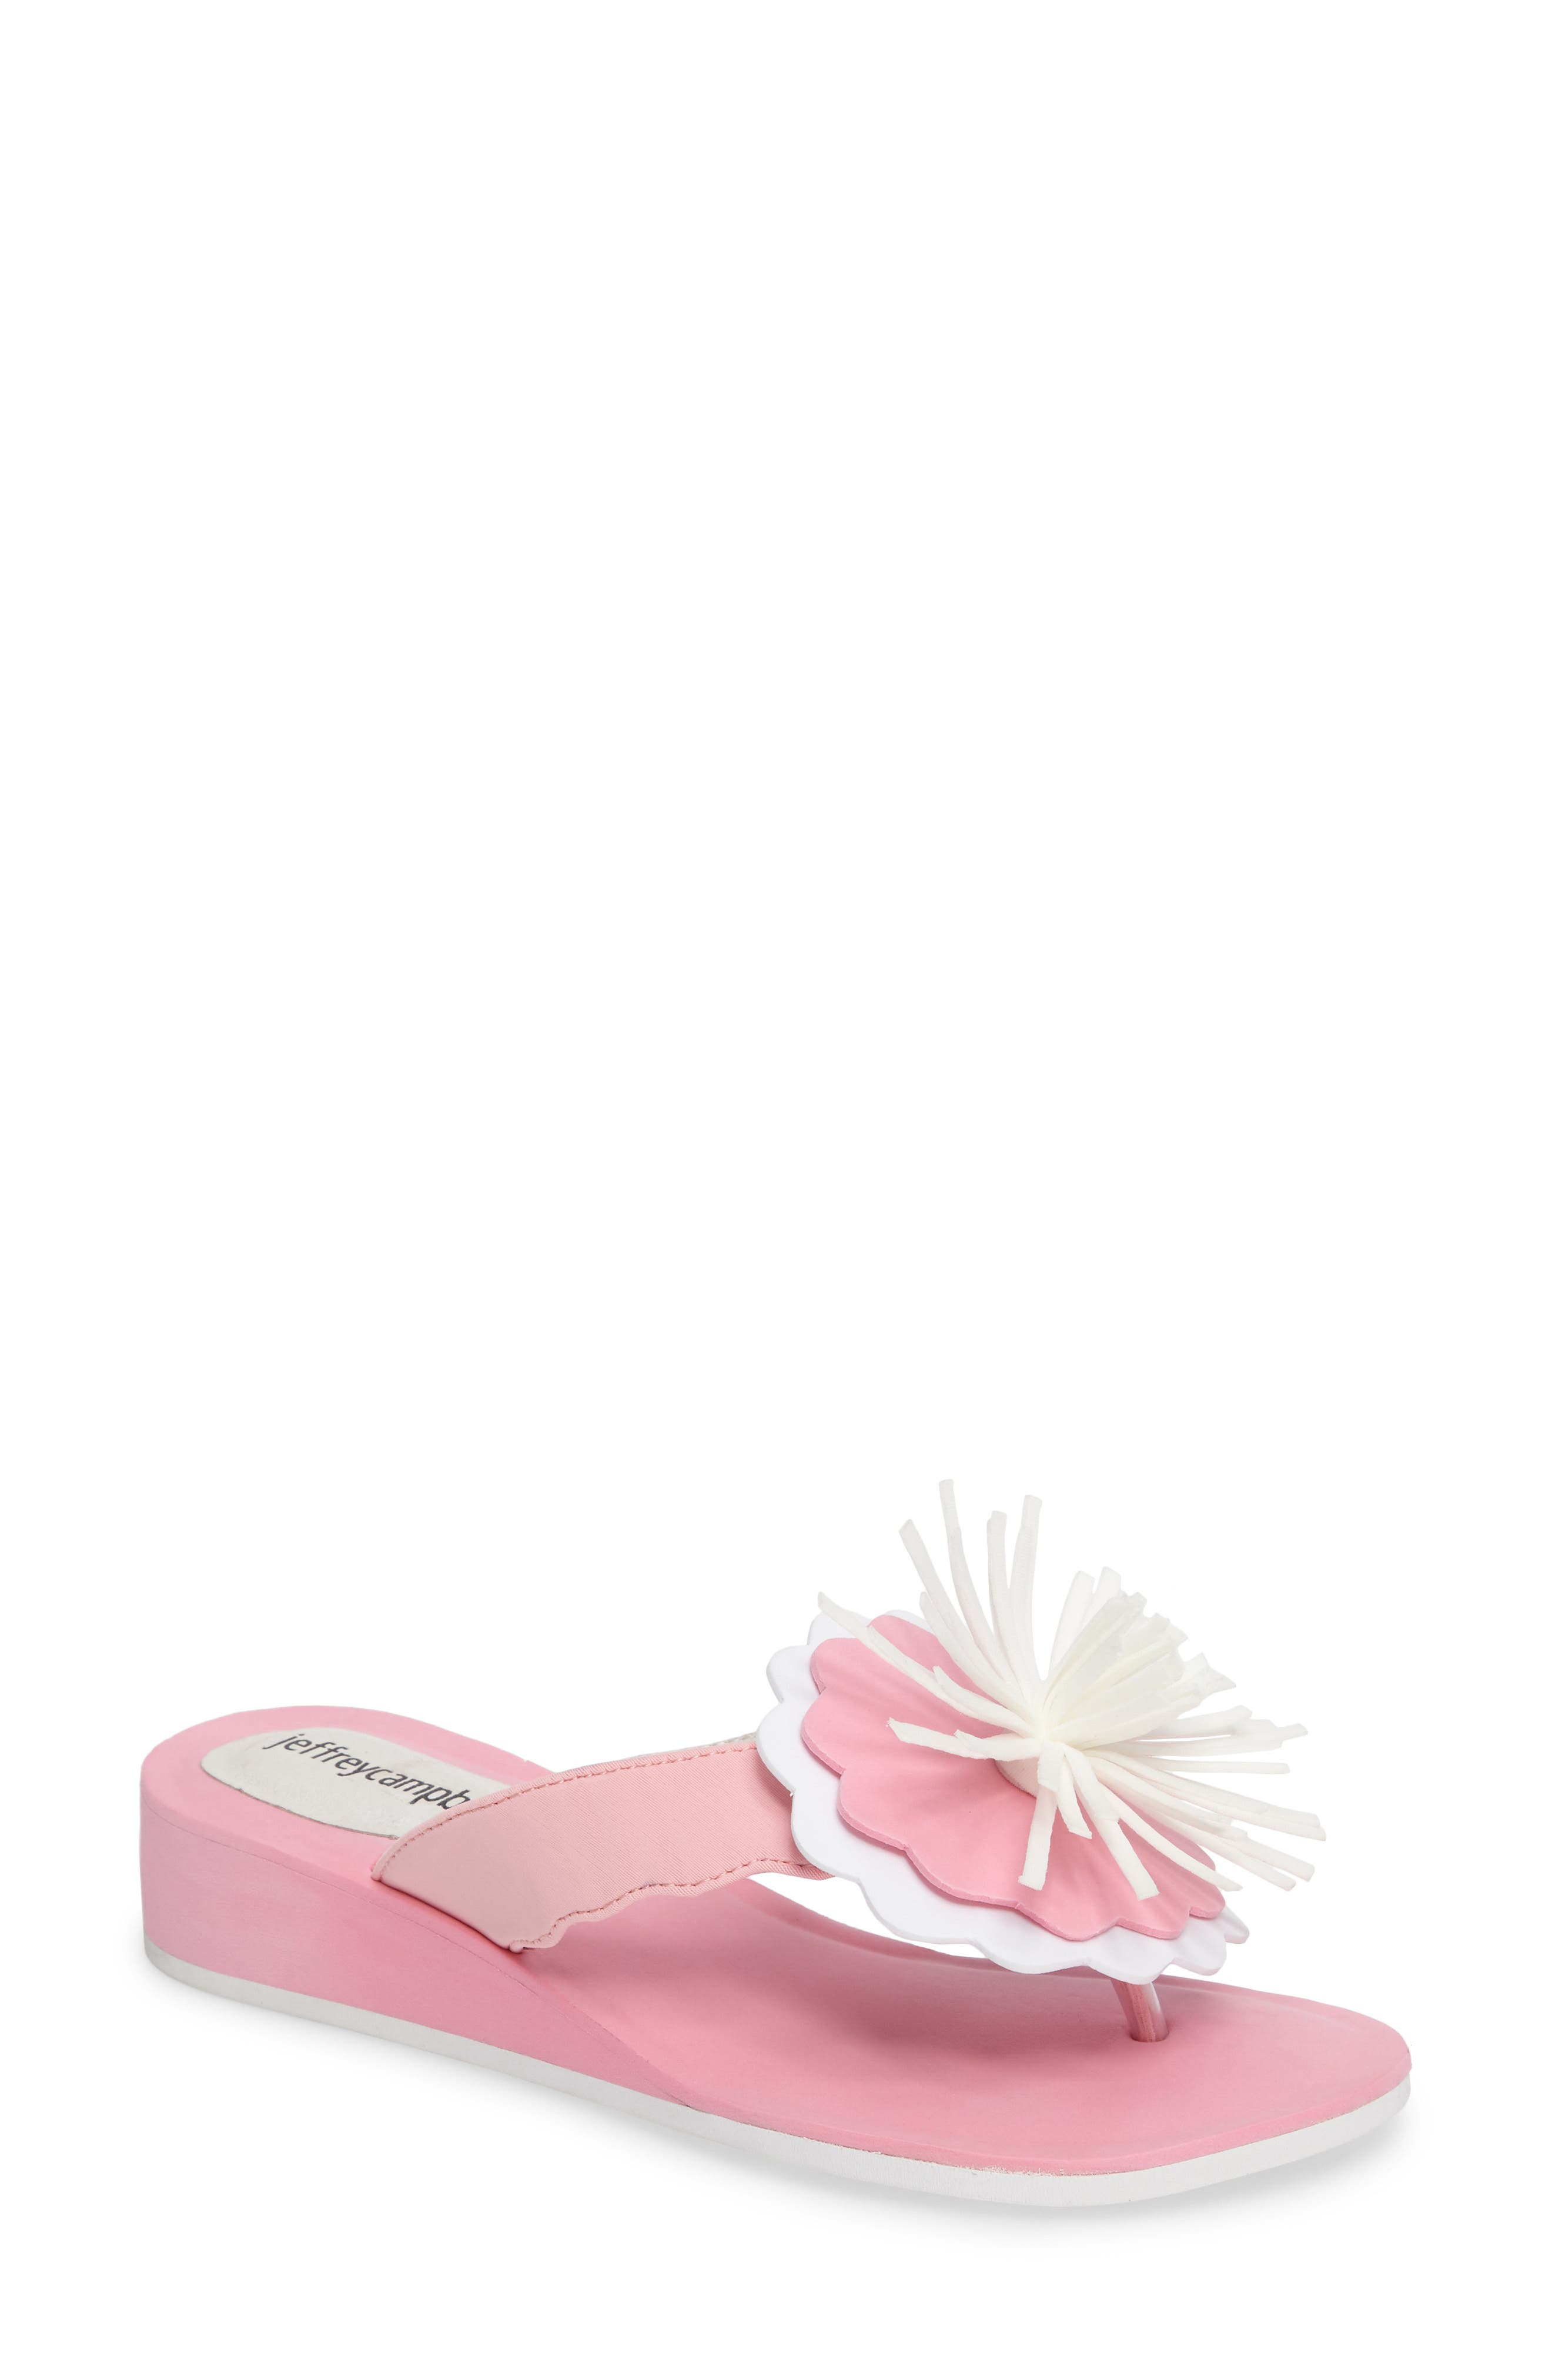 Jeffrey Campbell Itopia Fringed Wedge Flip Flop (Women)